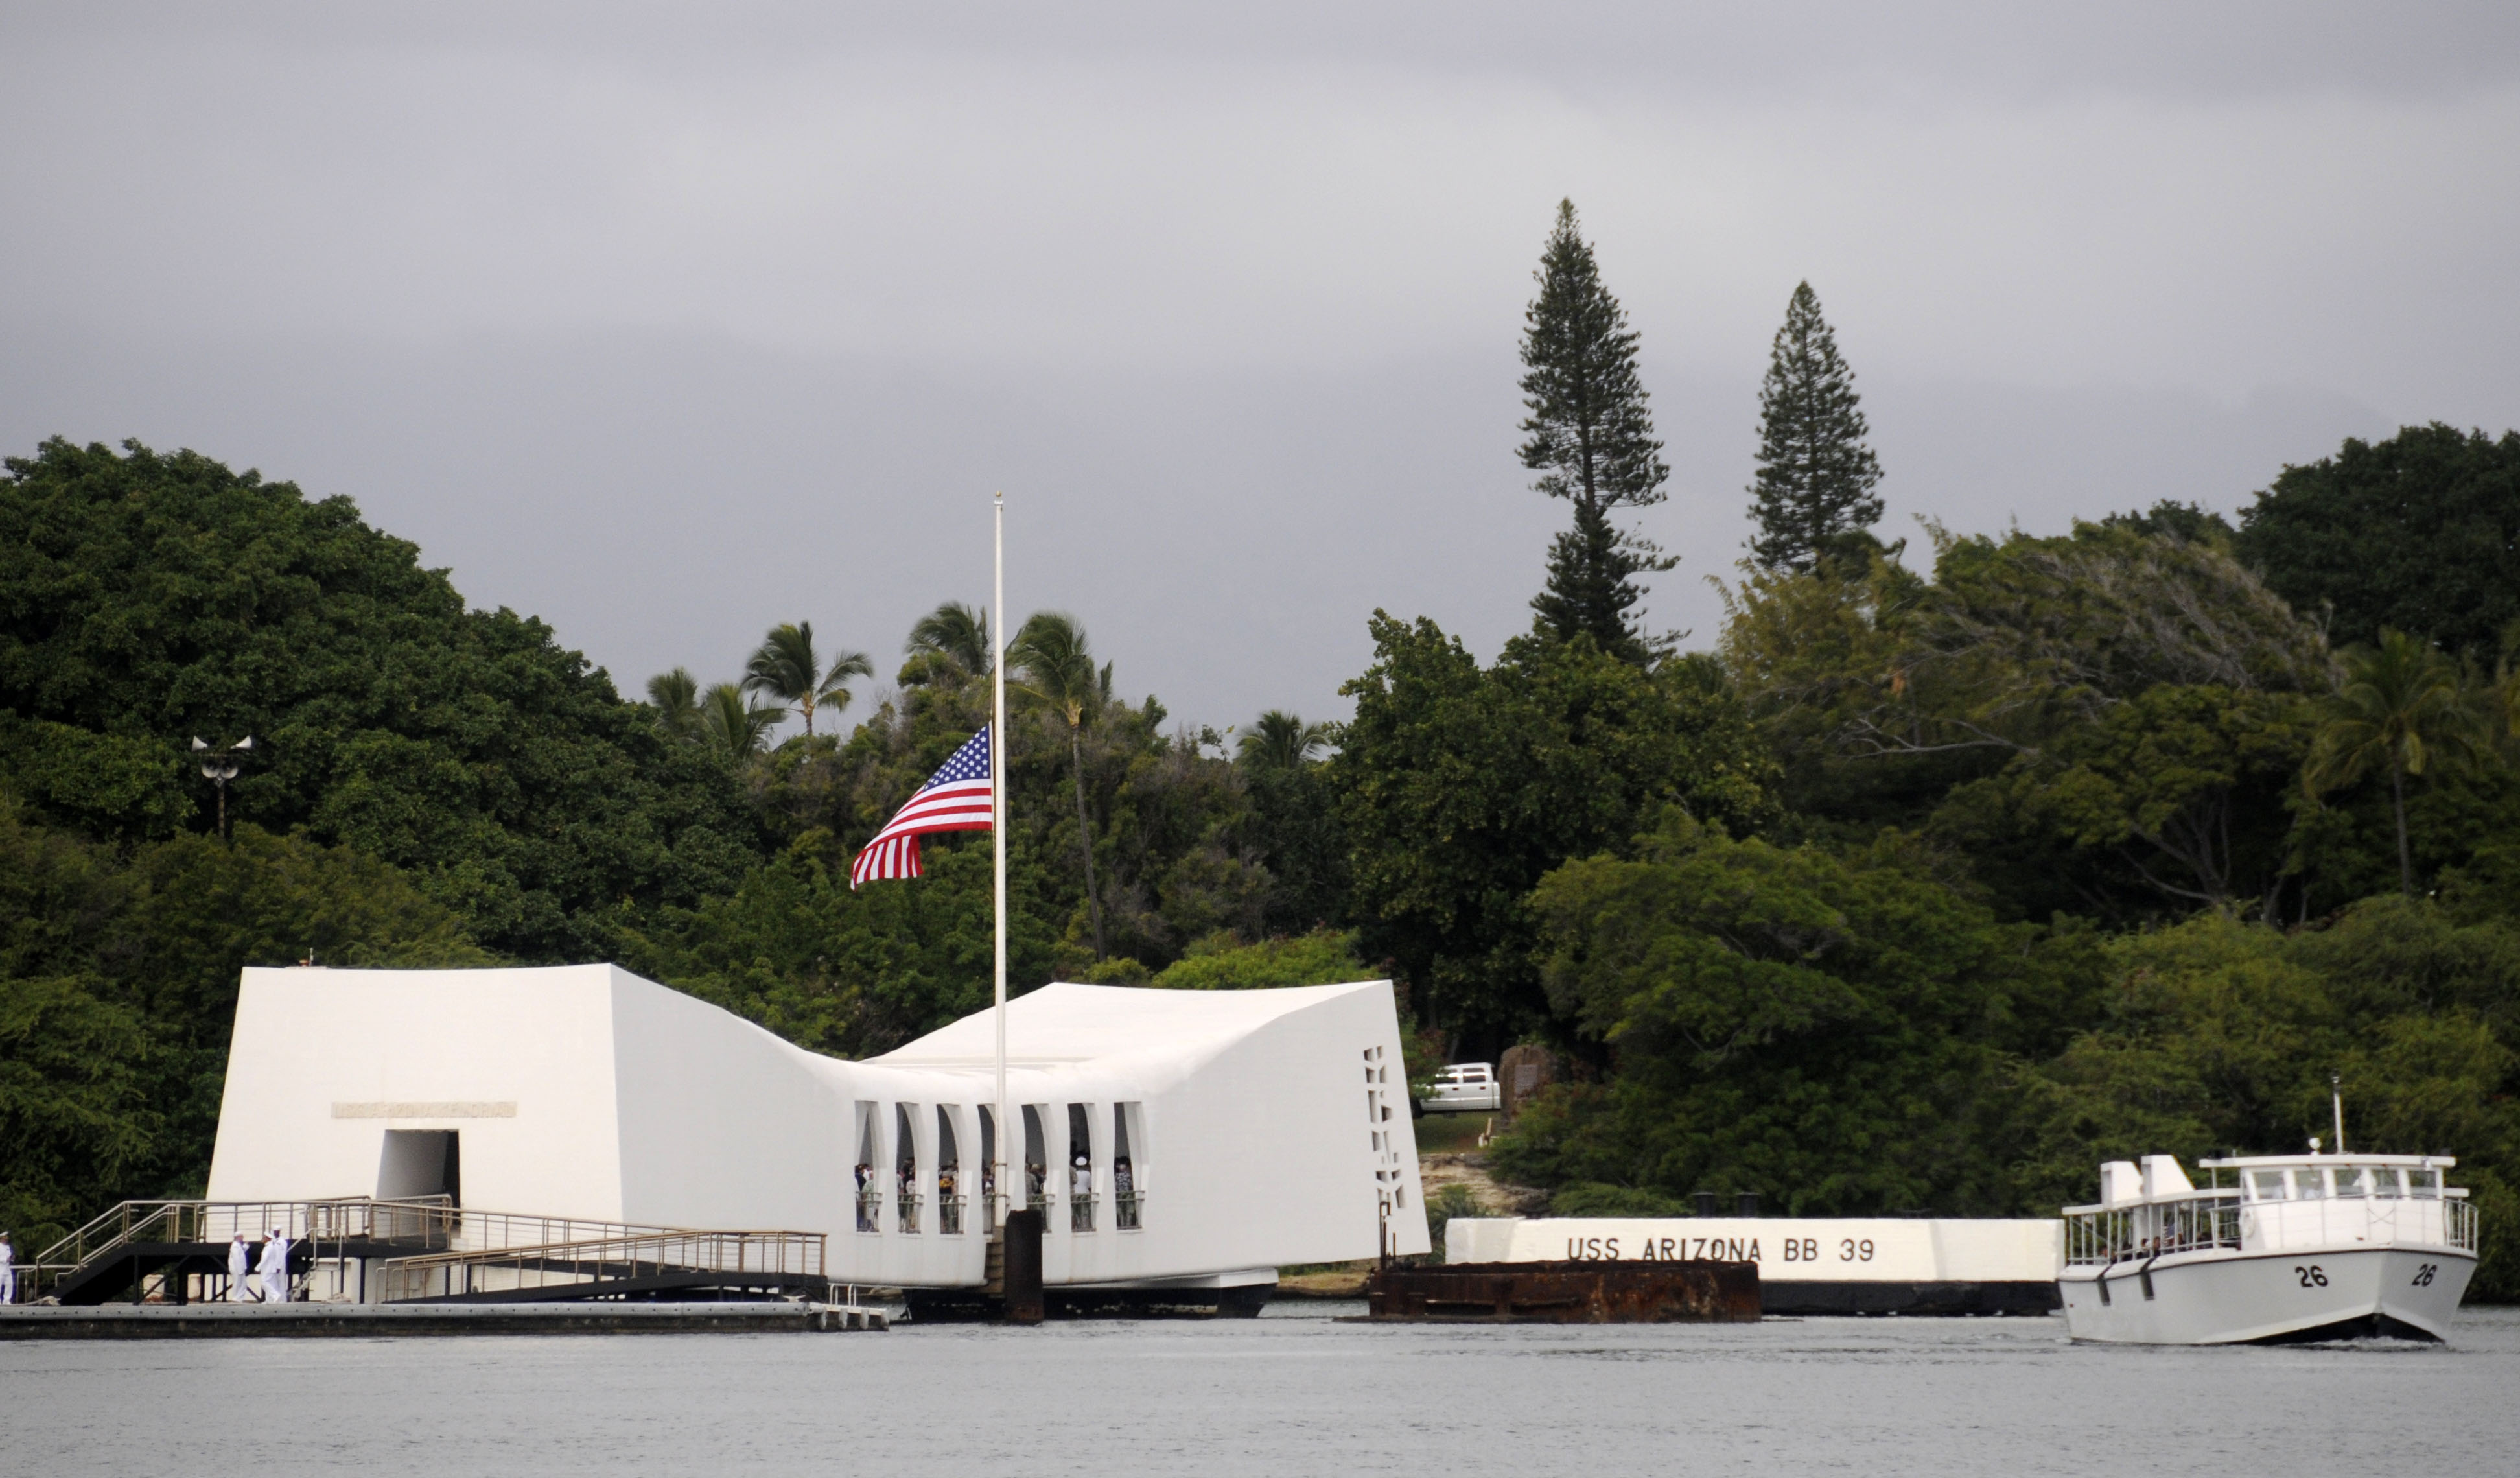 uss arizona in pacific ocean with a flag at half staff, with dark green trees in the background